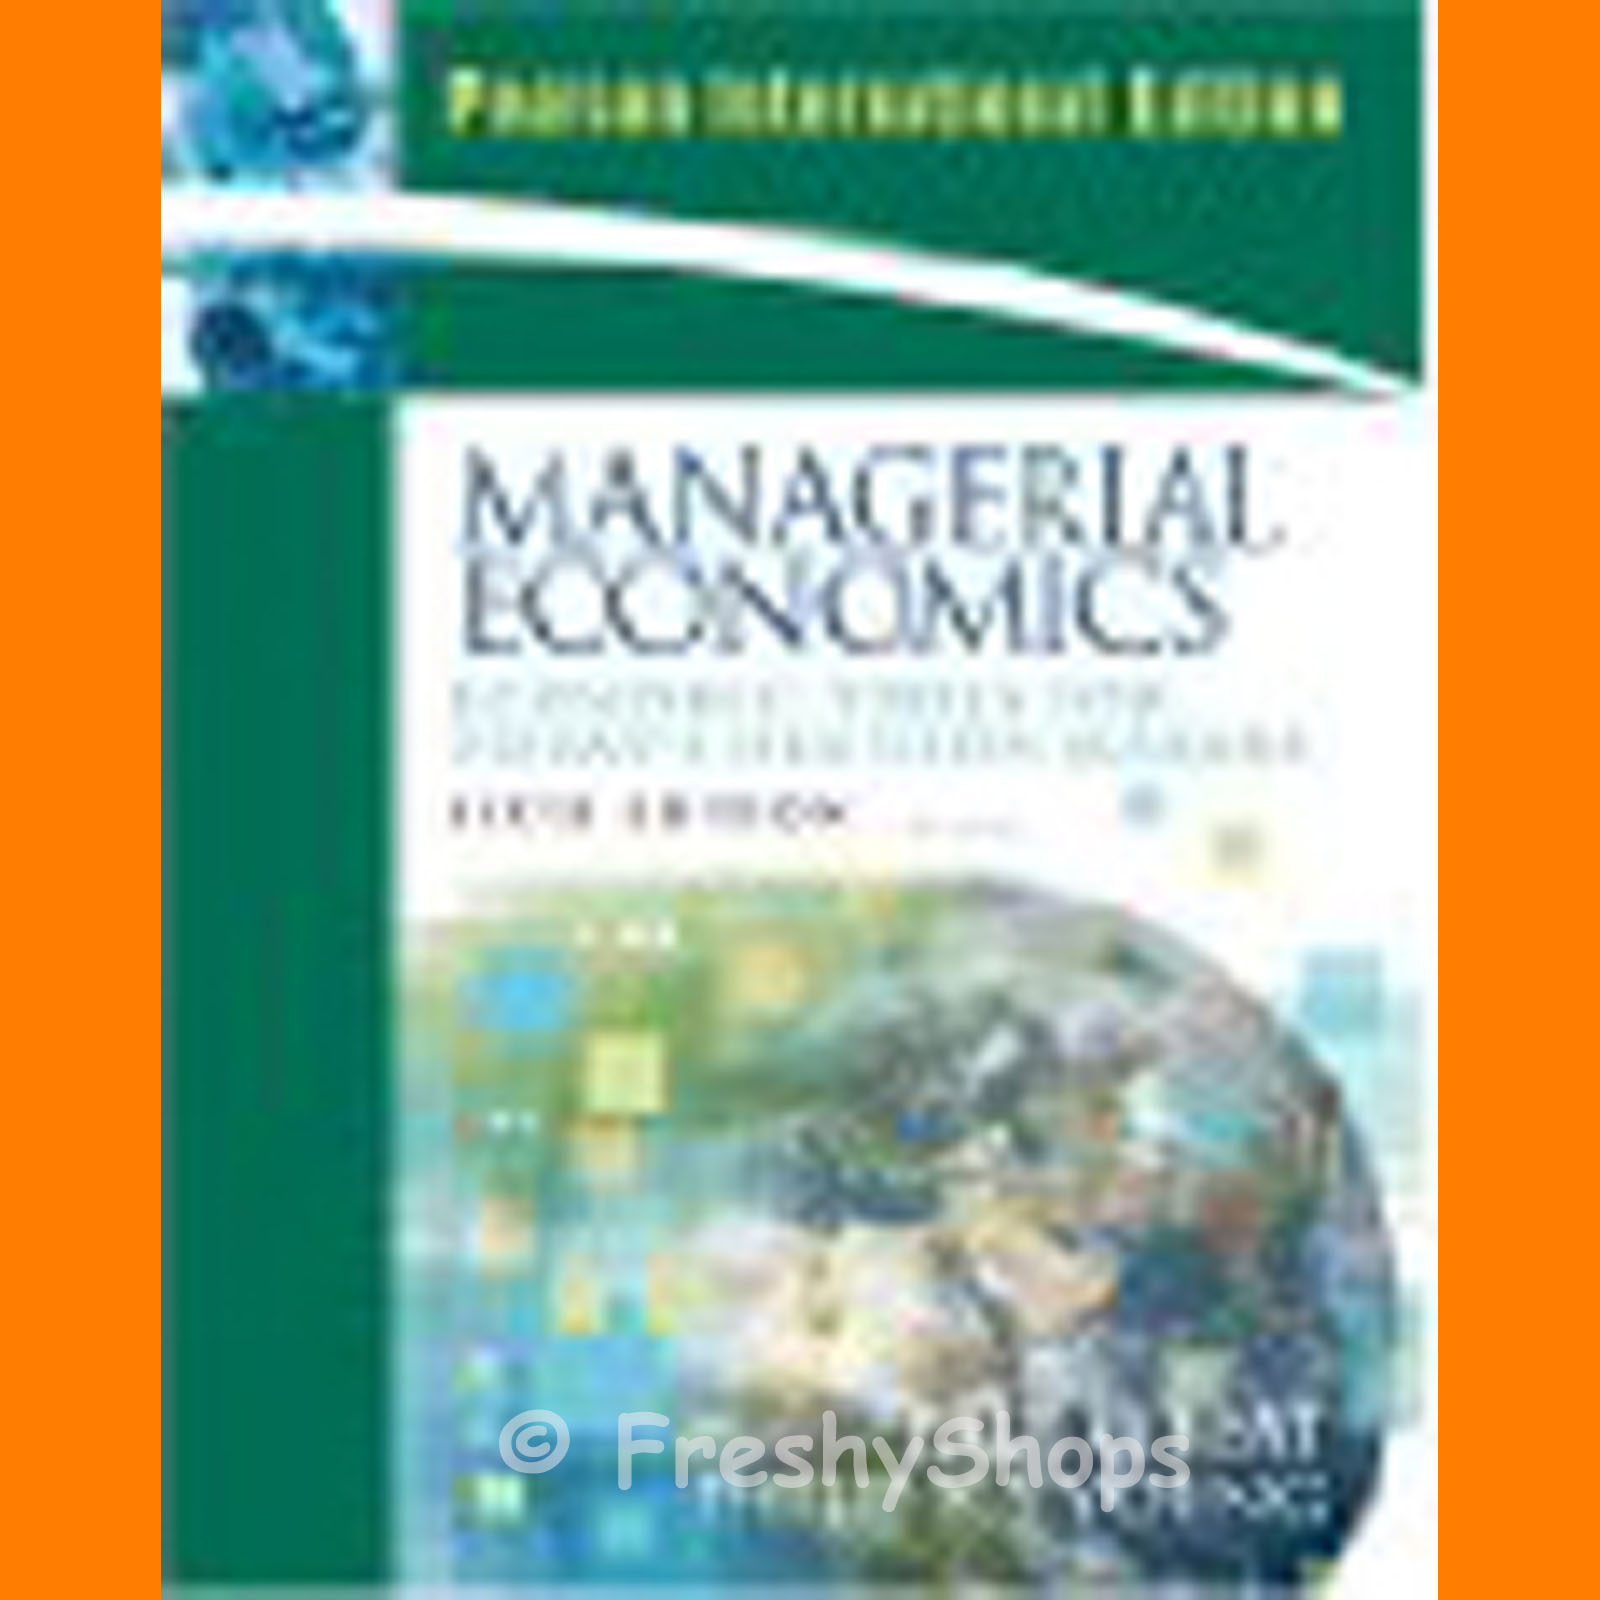 managerial economics advanced Find and buy managerial economics books and managerial economics textbooks, from pearson education's online bookshop, offering information on new releases, bestselling and forthcoming managerial economics books.